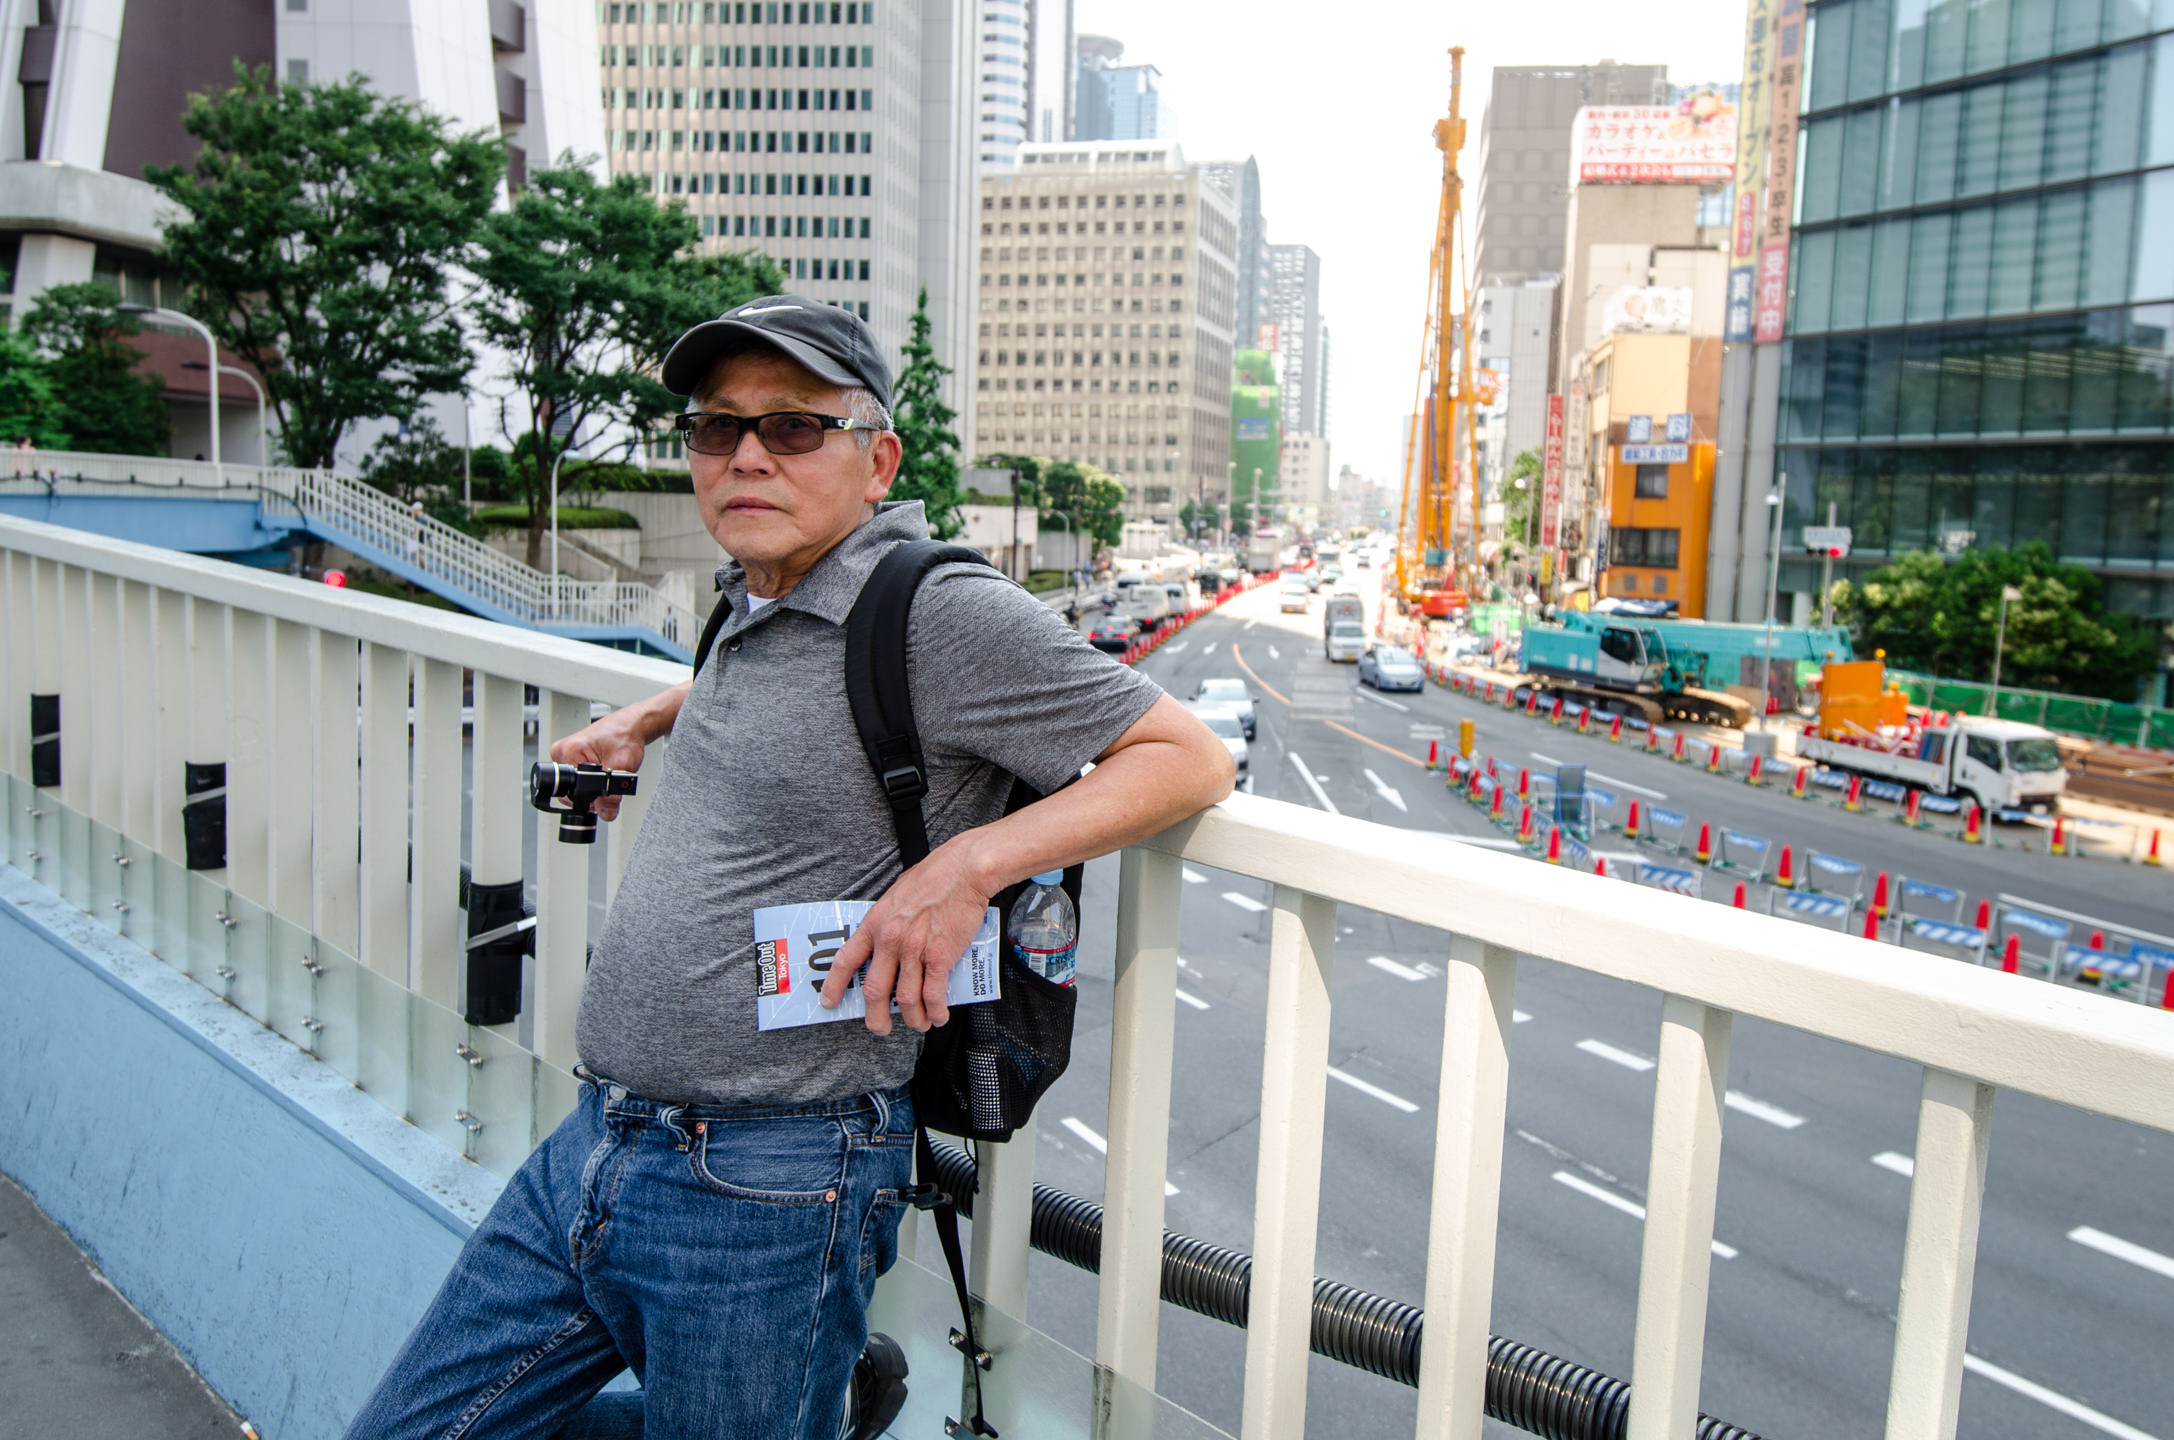 Sonny Tat relaxes along a bridge walkway railing in Tokyo Japan